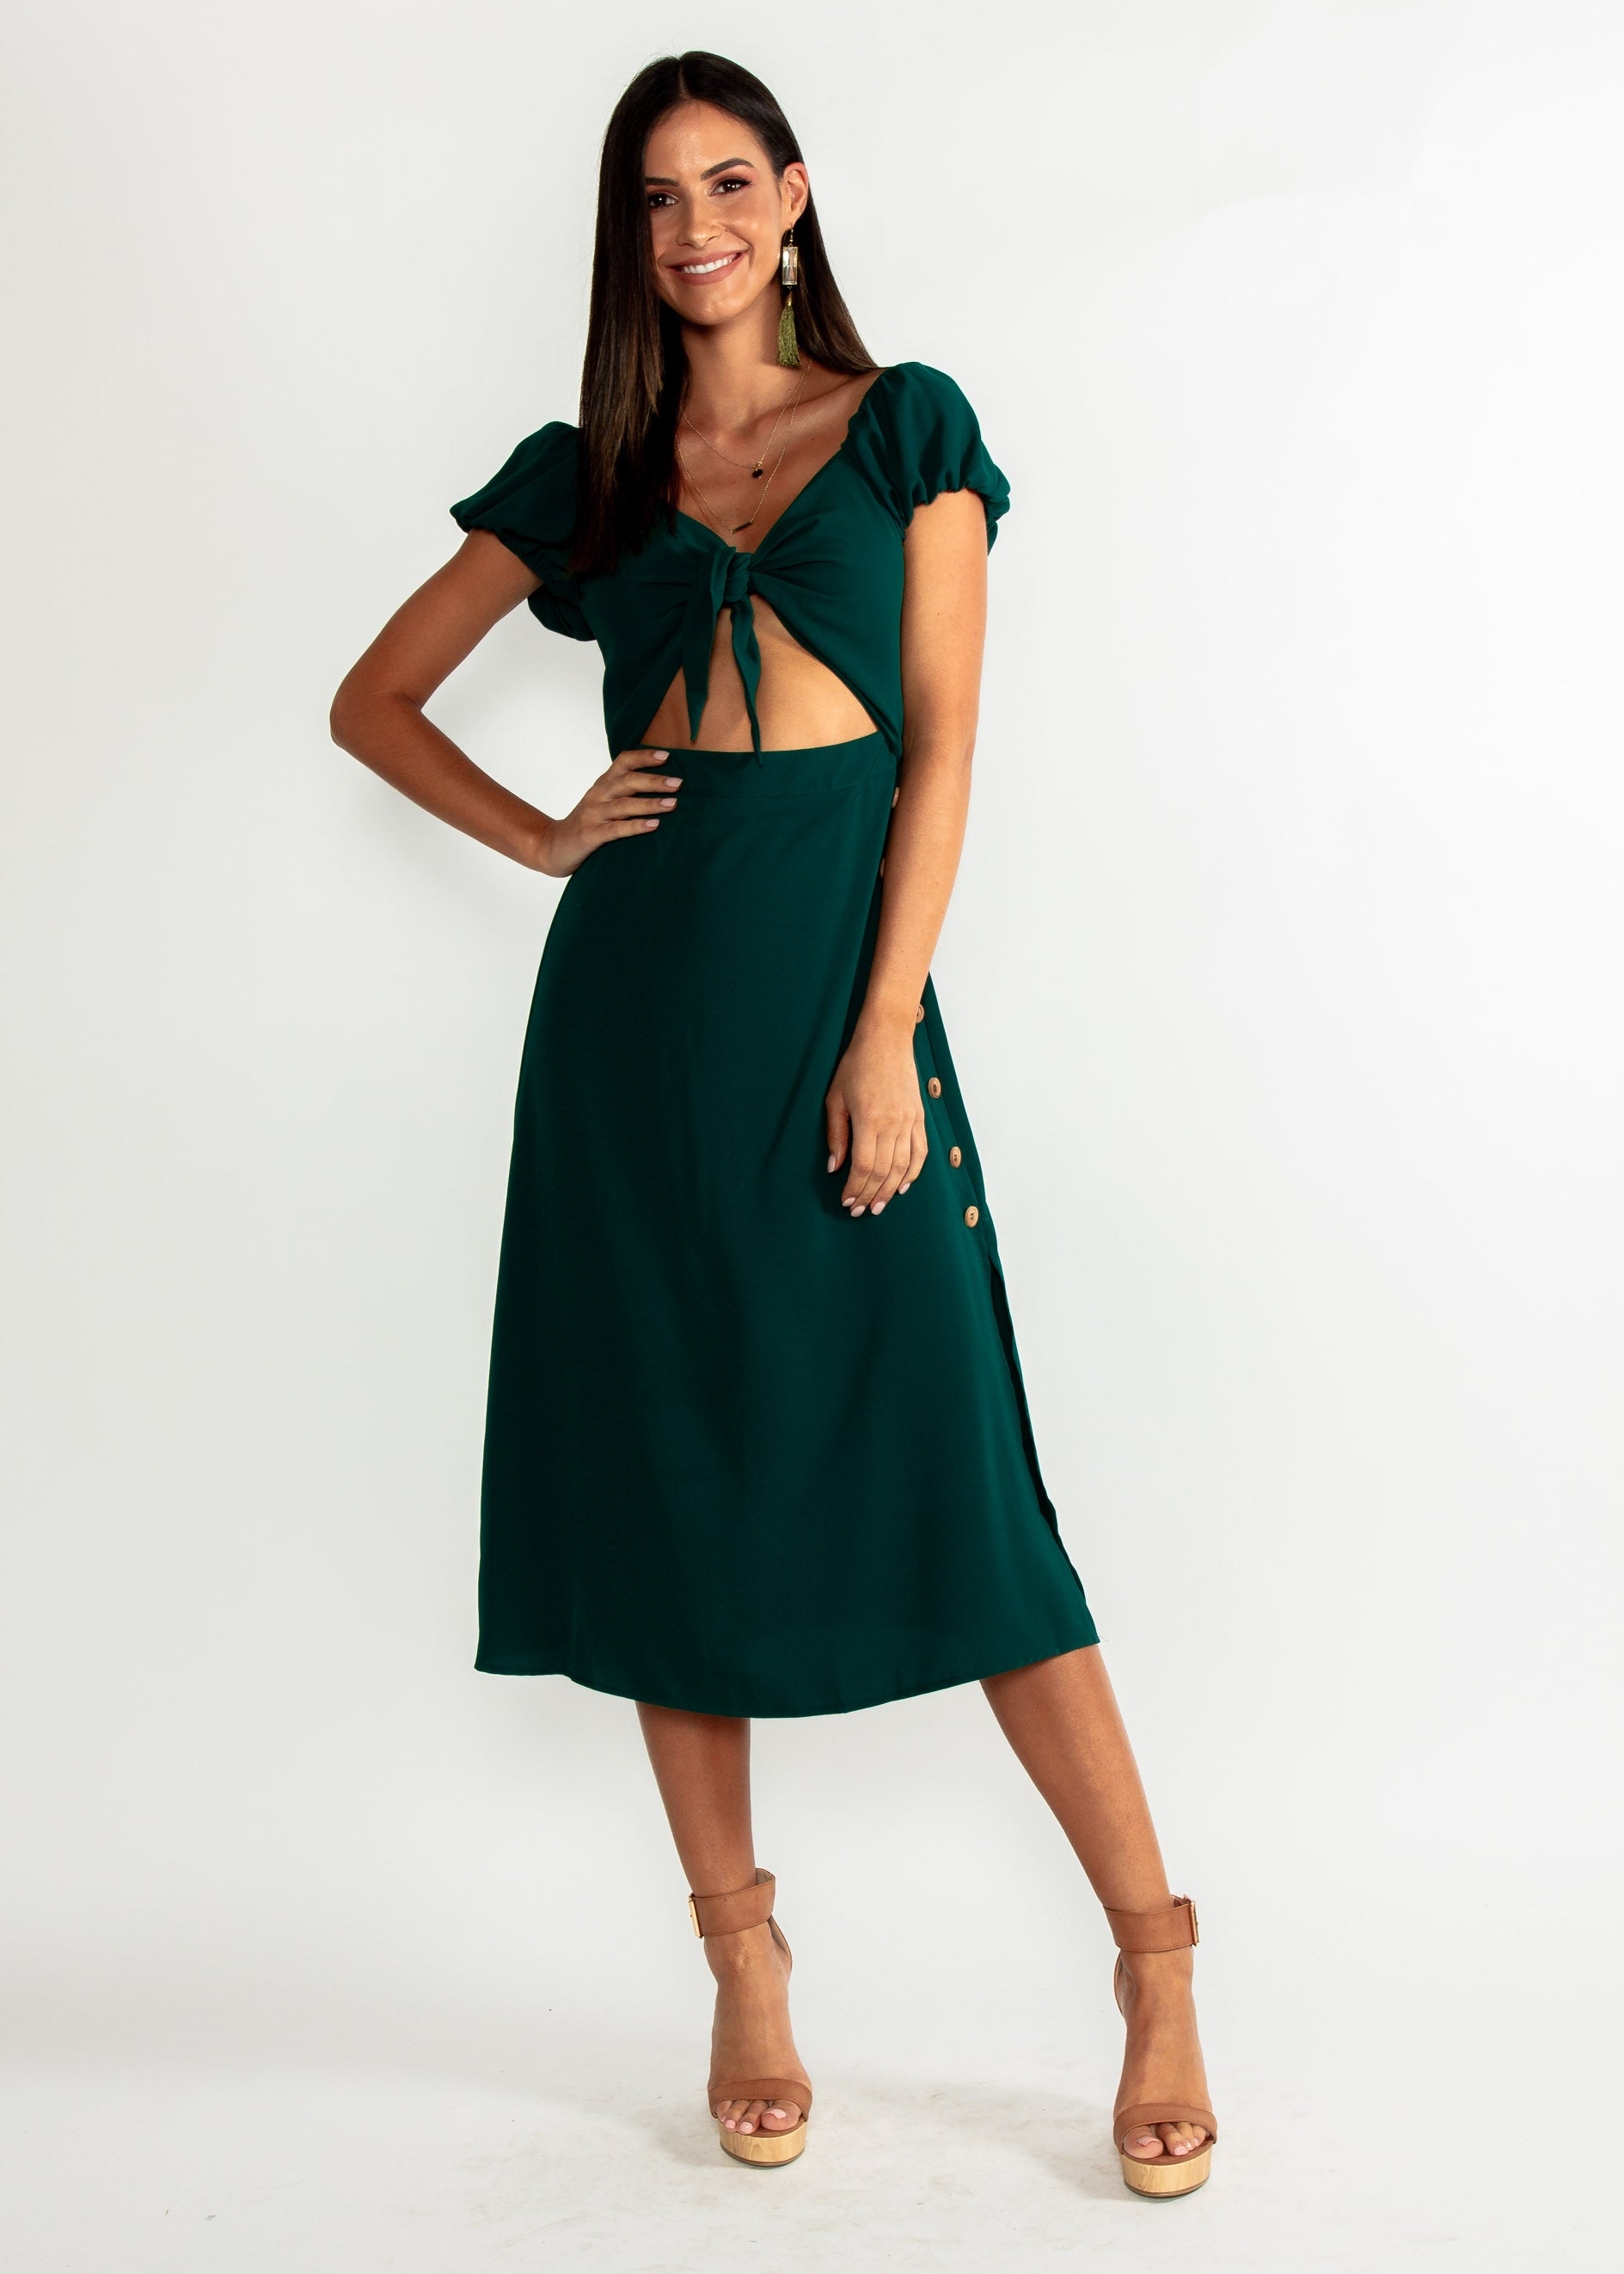 Free Fall Tie Midi Dress - Emerald